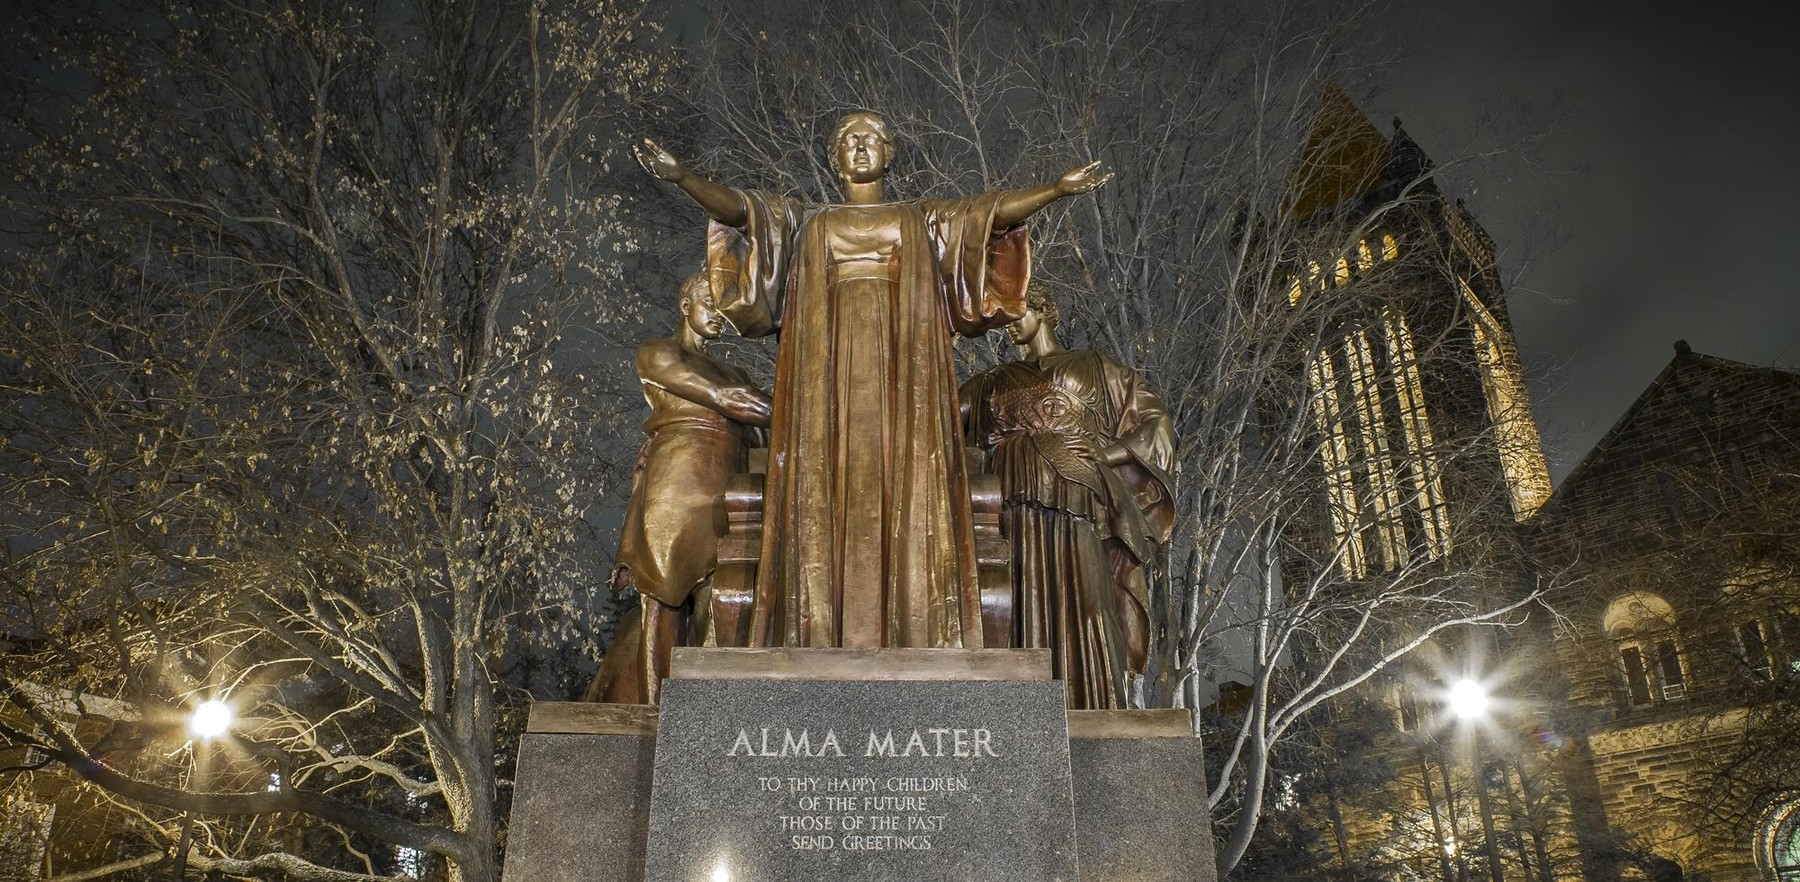 dramatic image of the Alma Mater statue and Algeld Chime Tower at night